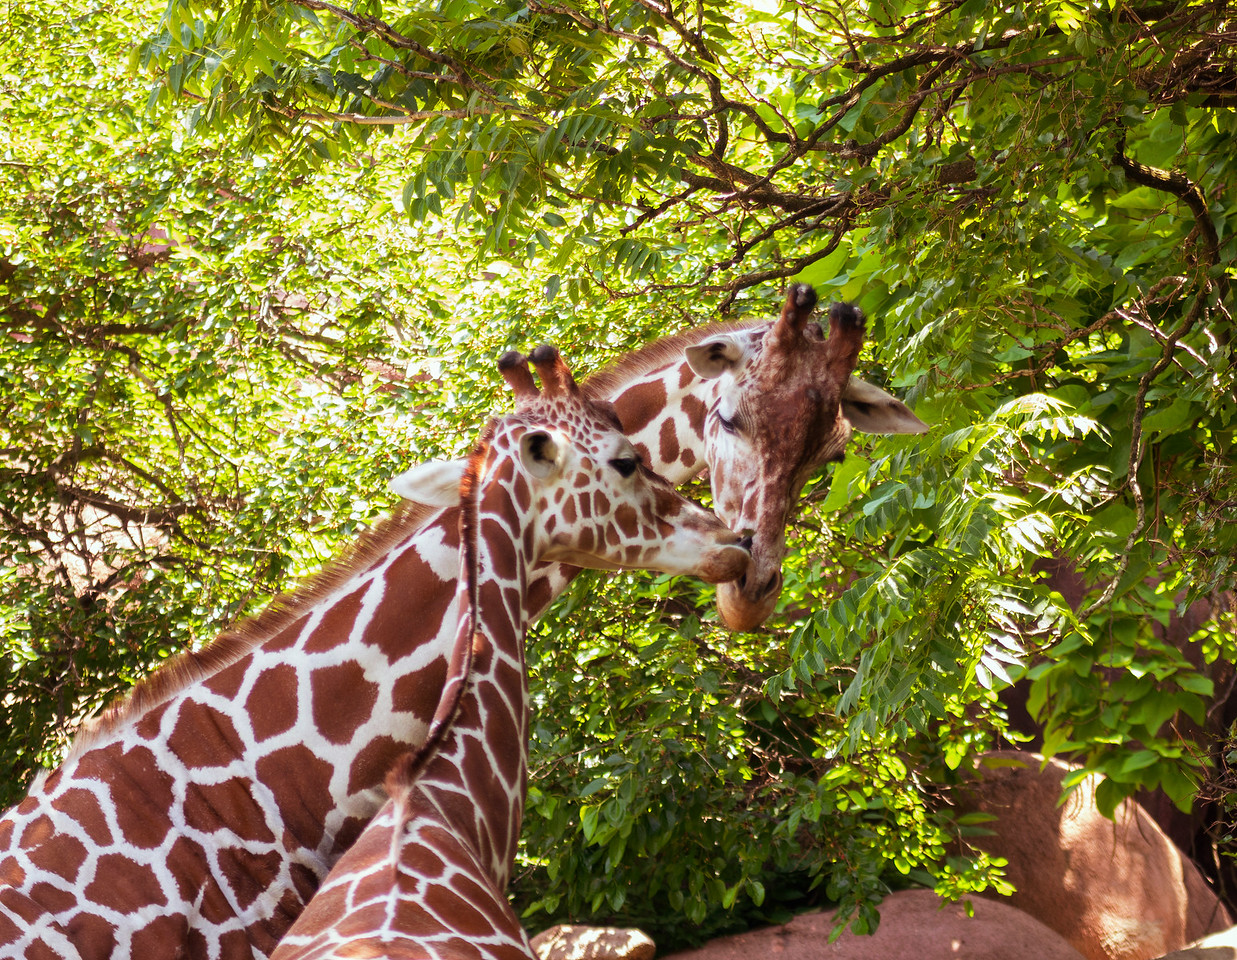 Summer days at the St. Louis Zoo, June, 2015.